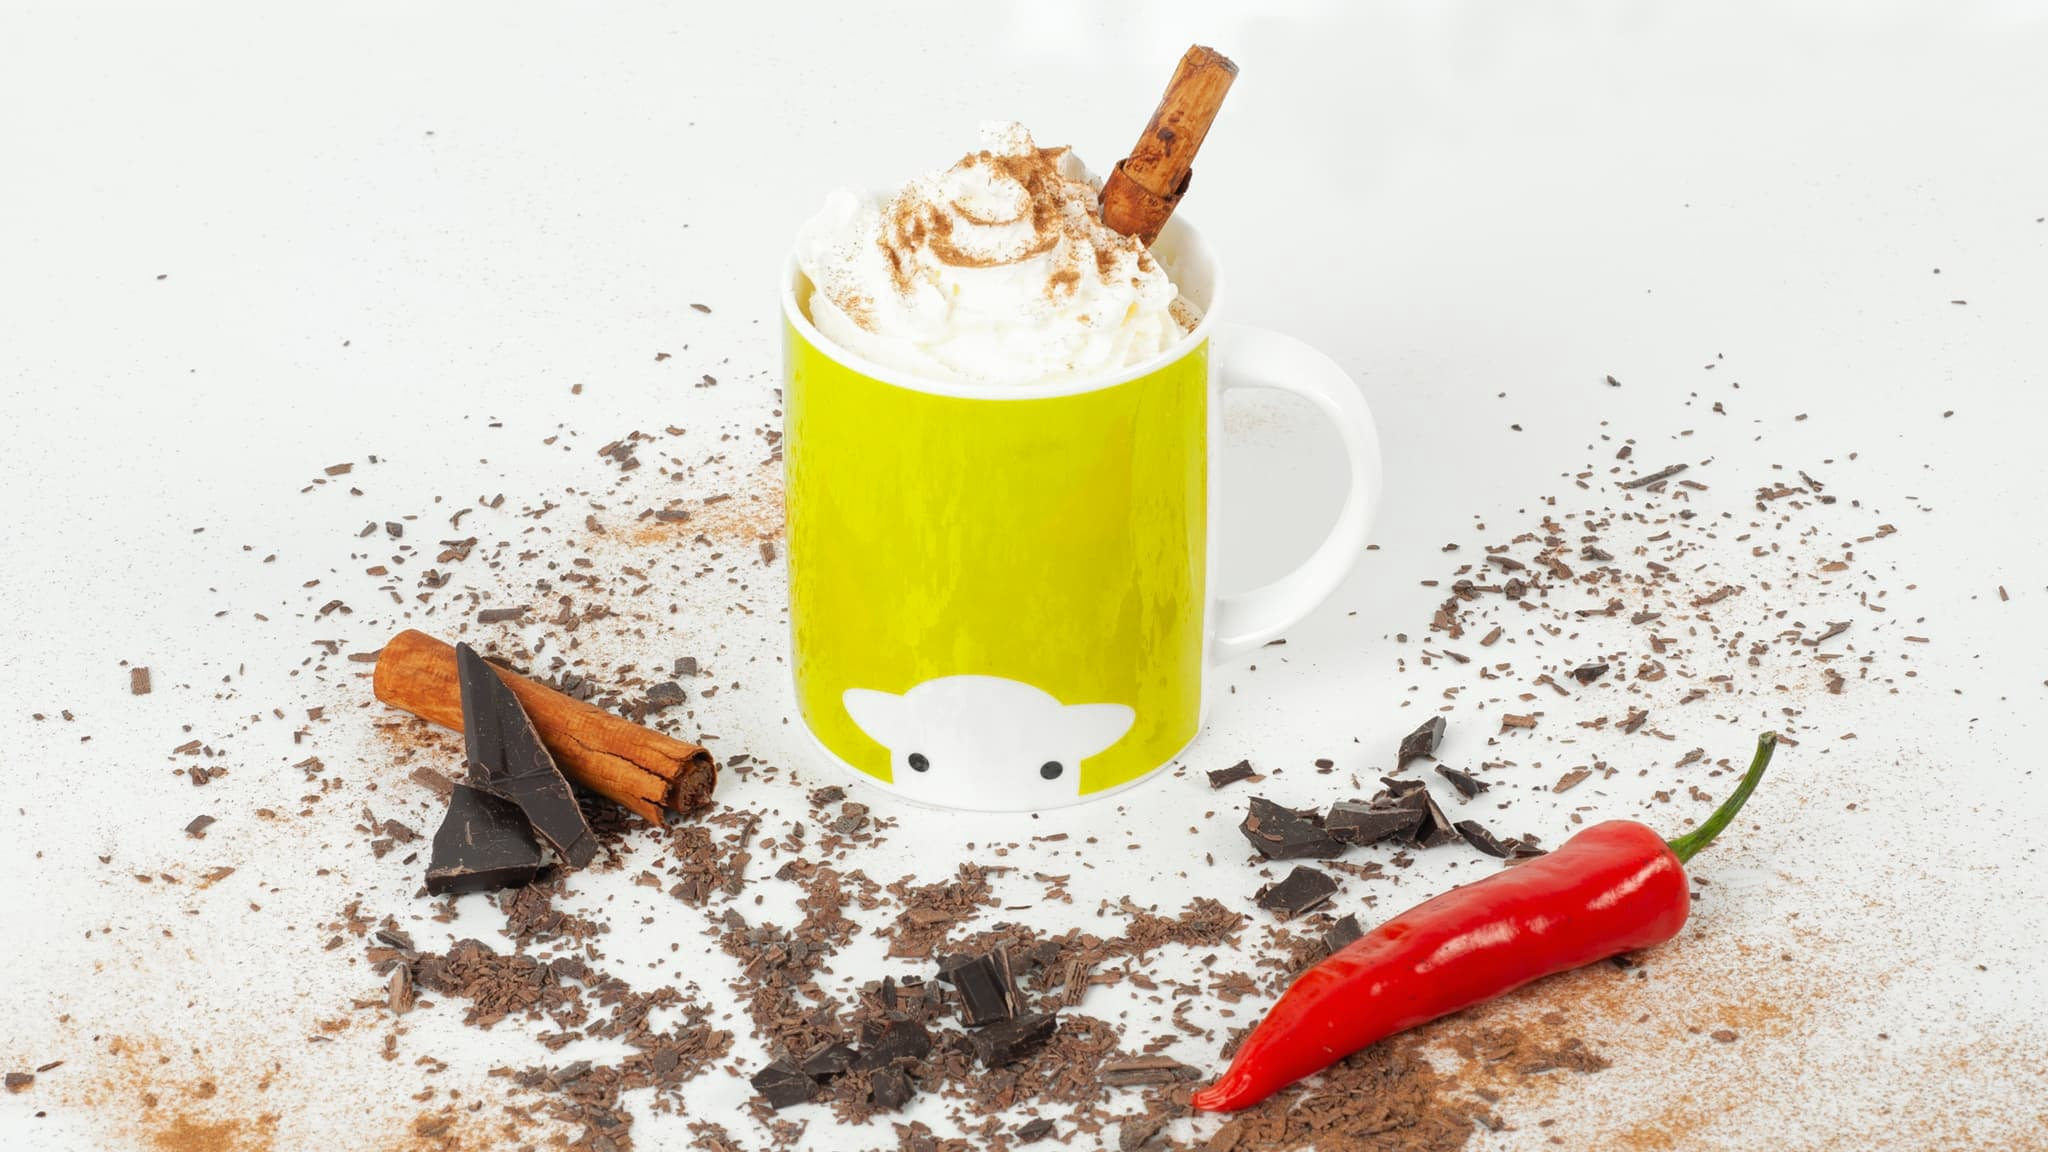 Chilli and chocolate work! This Mexican hot chocolate enjoys a nice hot kick from the cayenne pepper, which is tamed by whipped cream